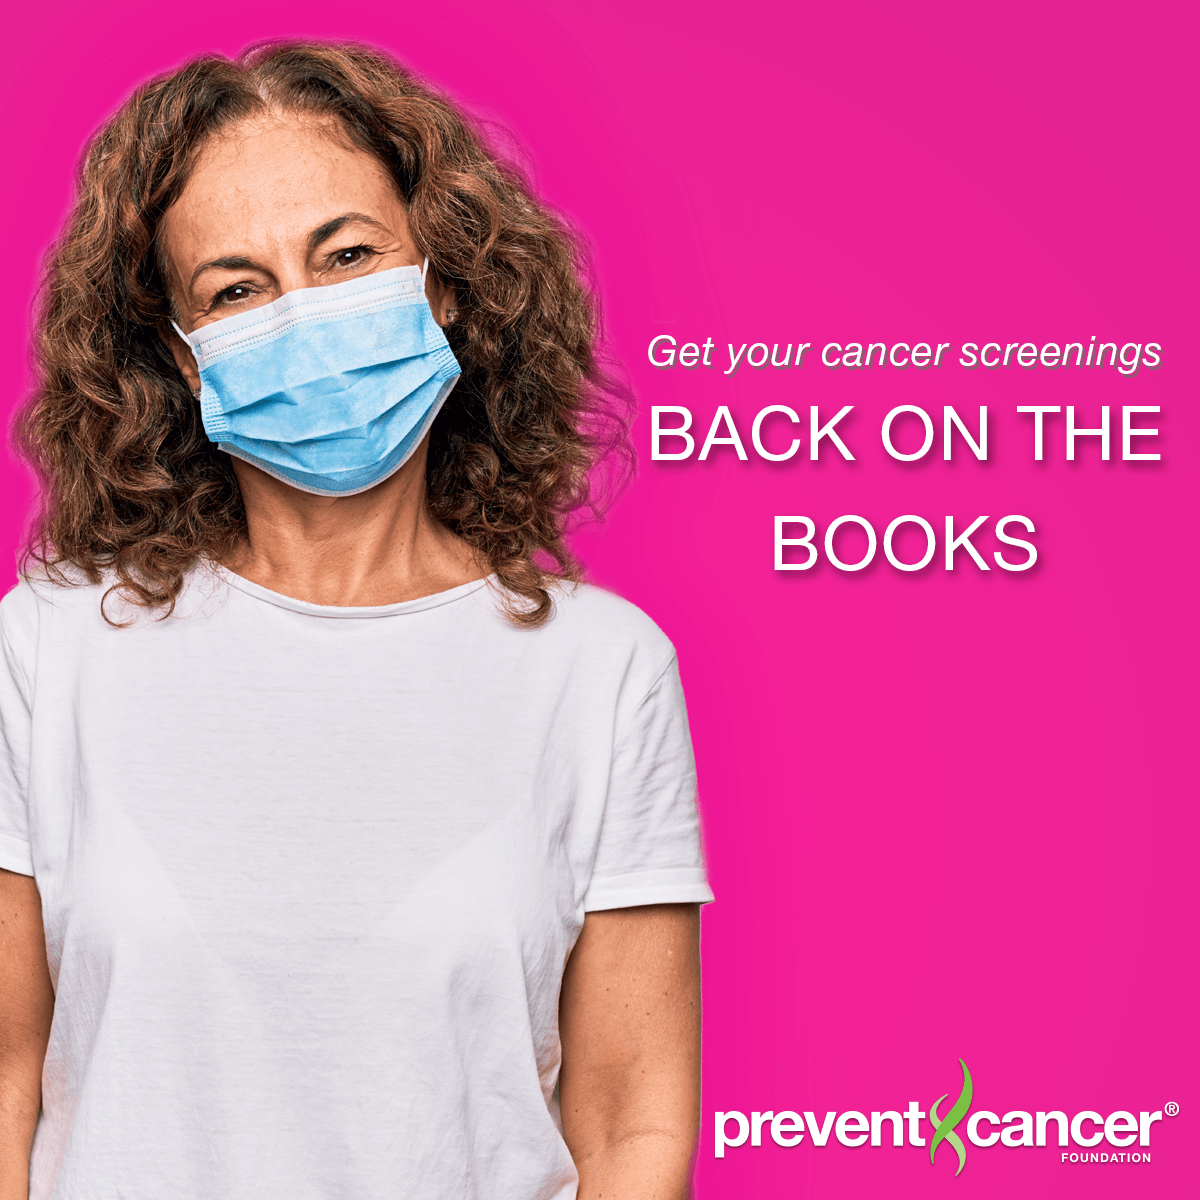 Get your cancer screenings Back on the Books